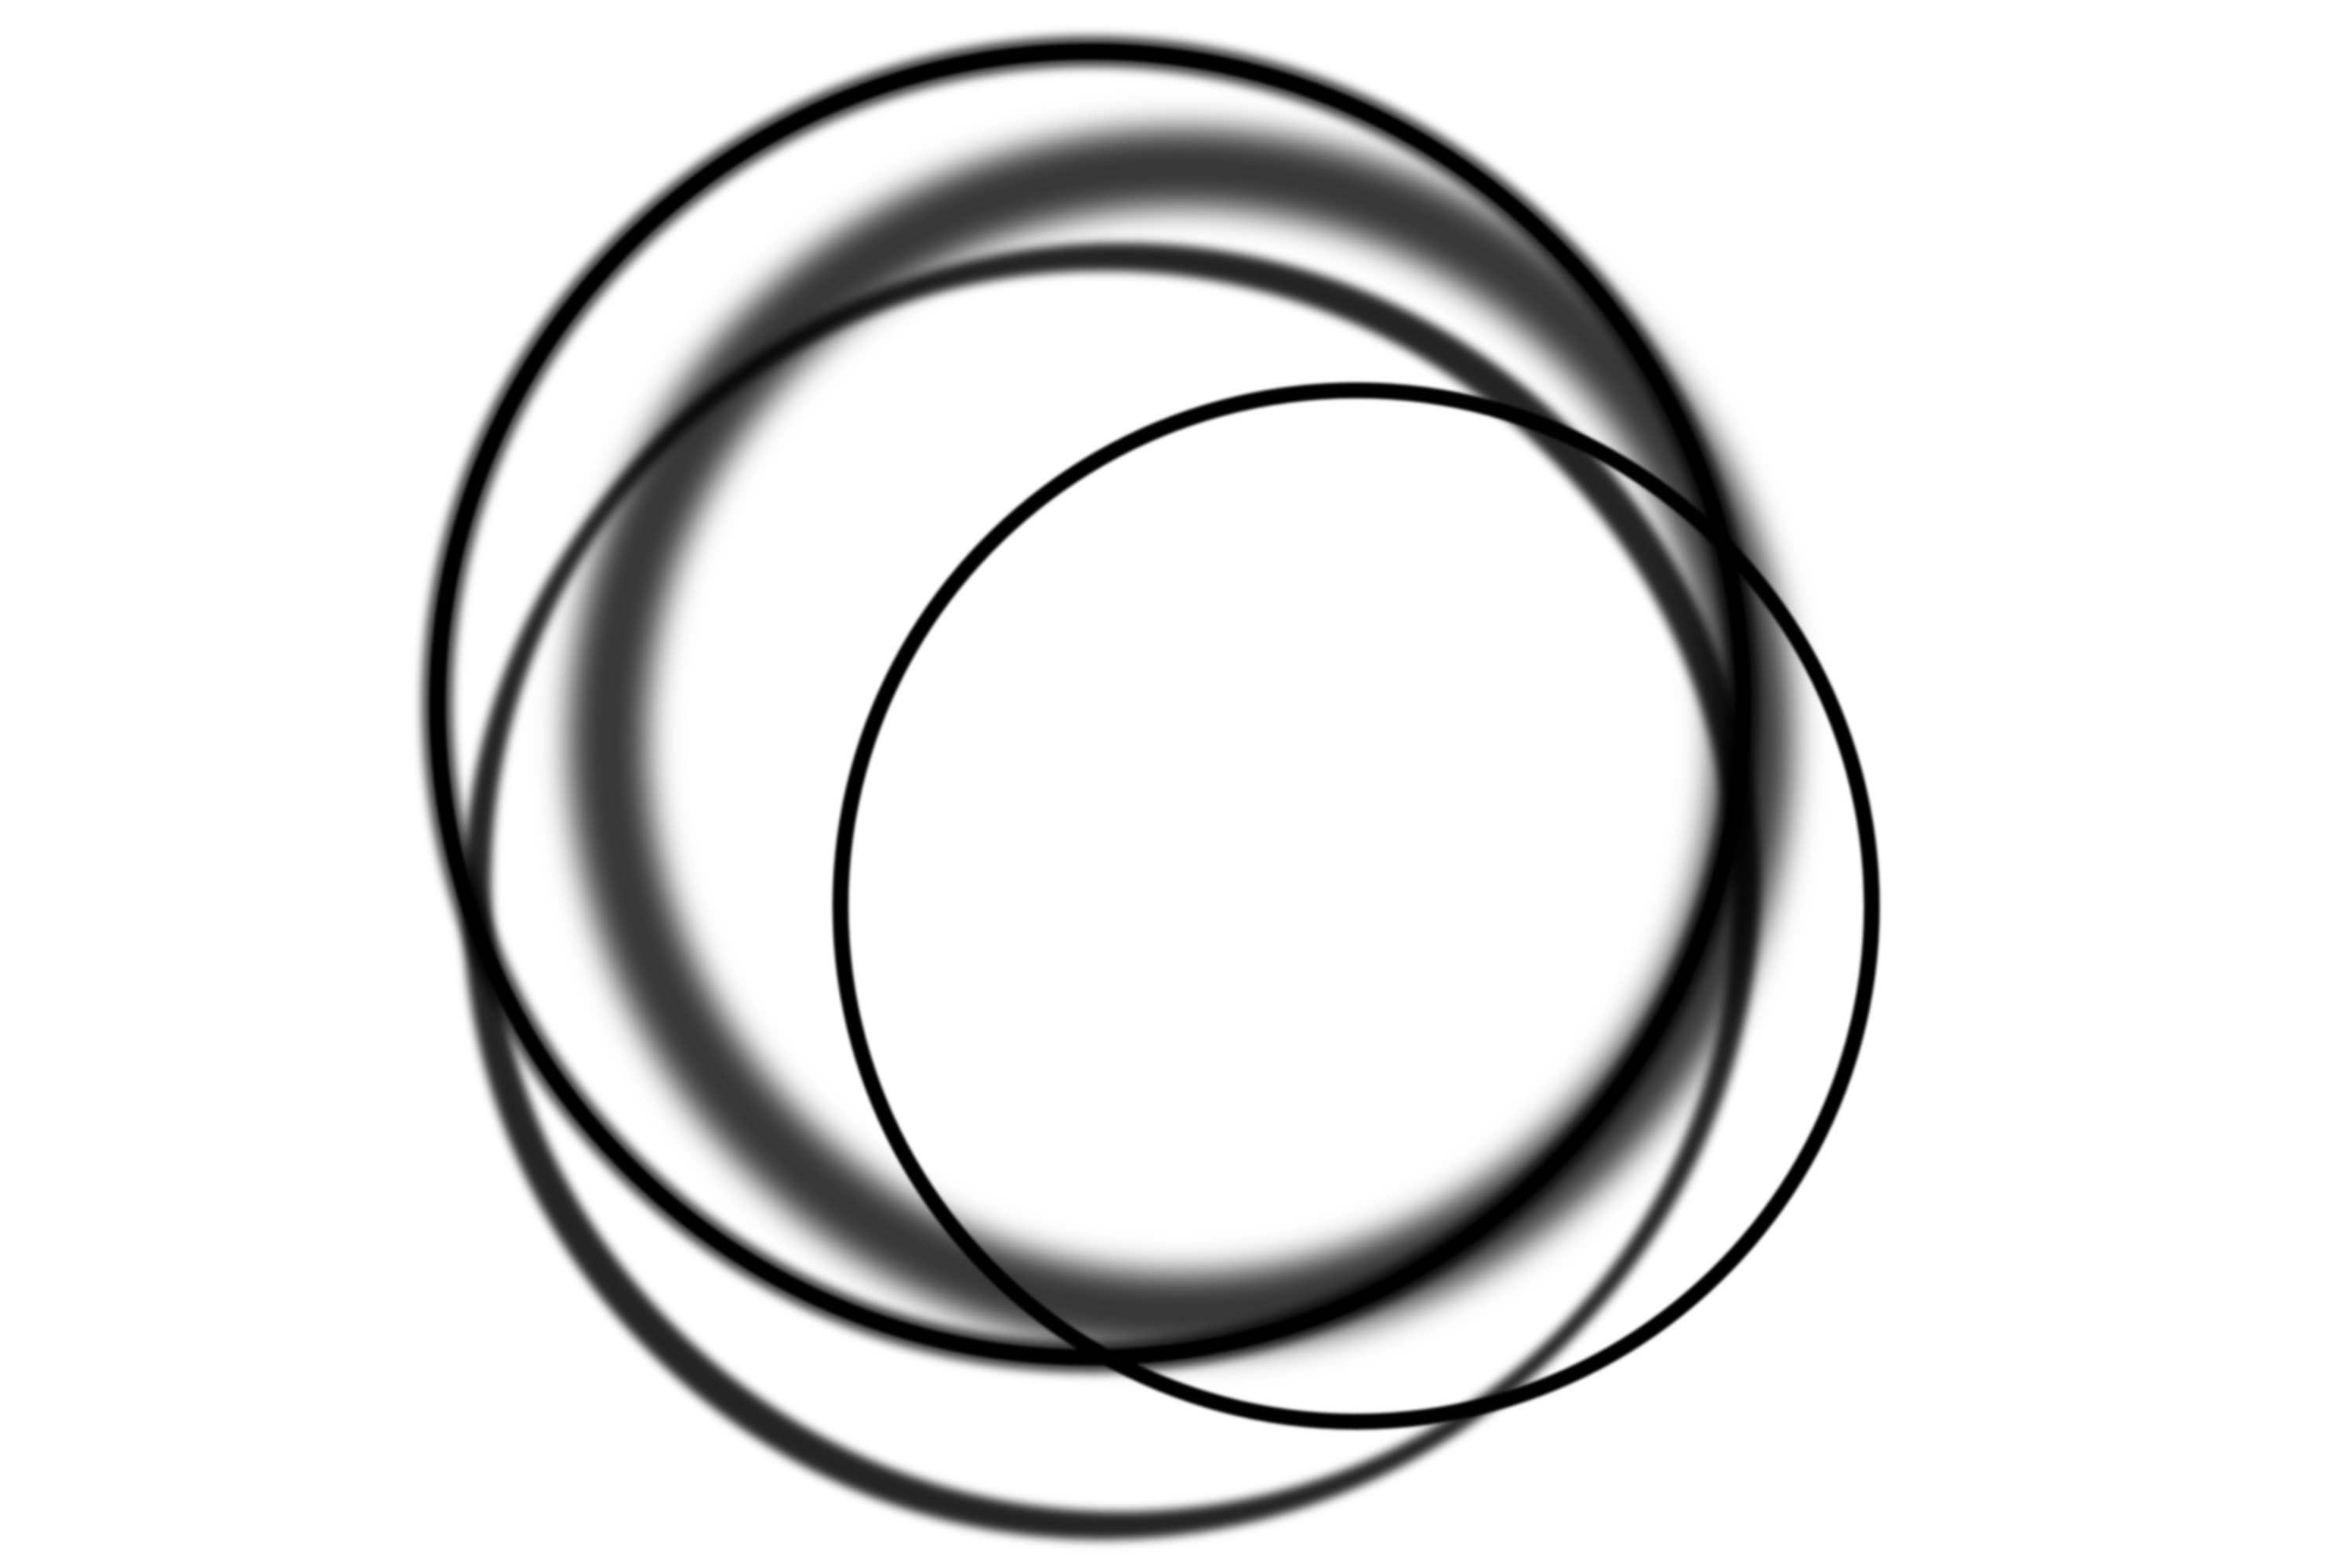 patterns of overlapping circles on white